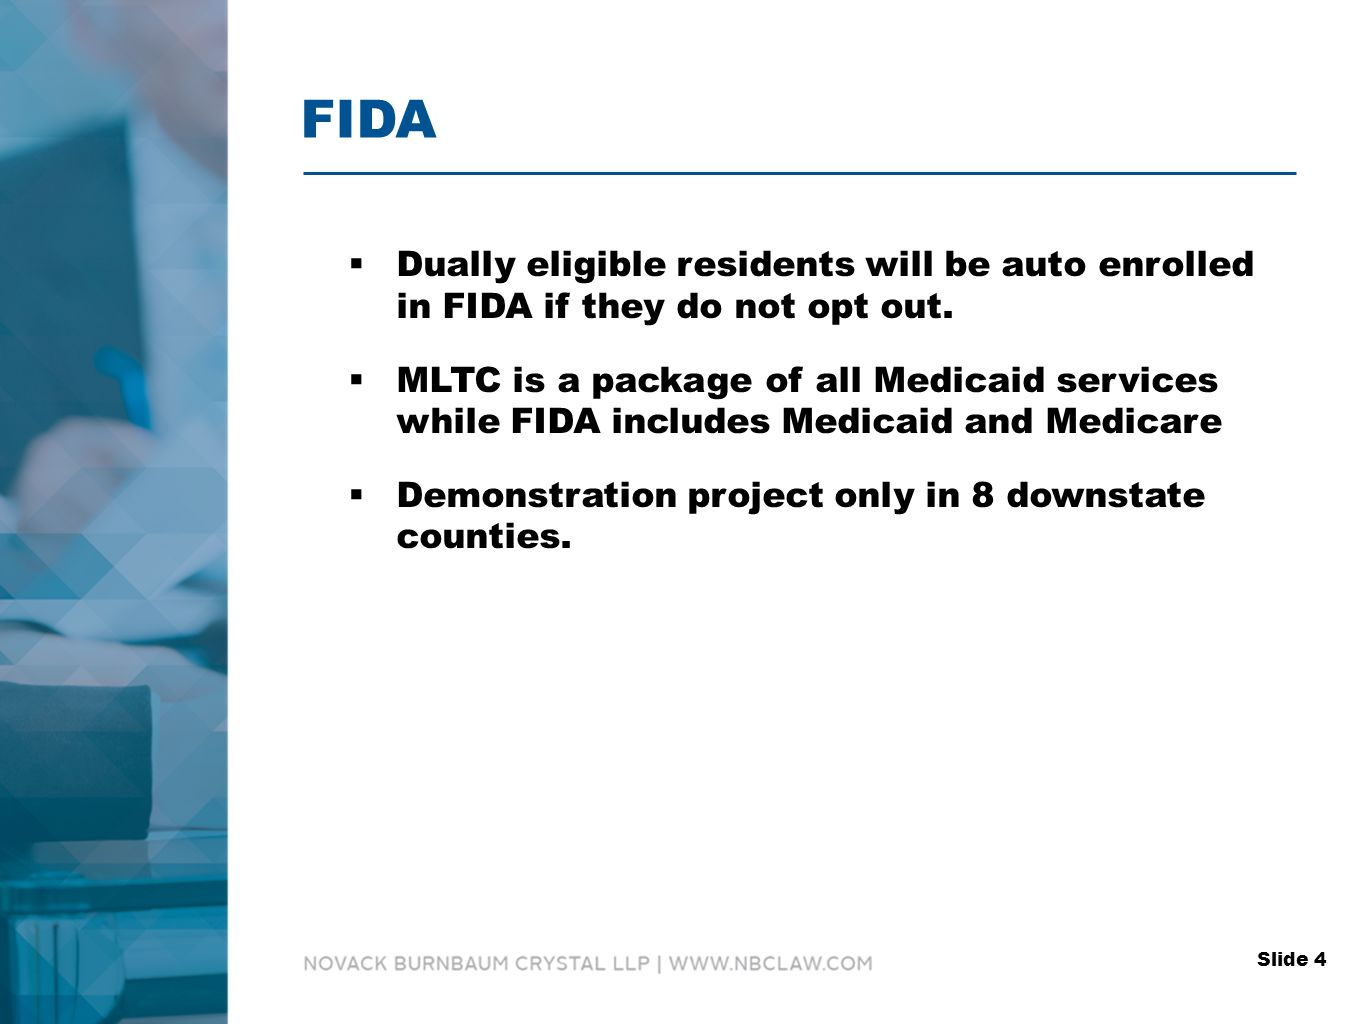 FIDA  Participants have access to all providers, all authorized services, and preexisting service plans including prescription drugs for 90 days or until the Person Centered Service Plan is finalized and implemented, whichever is later.